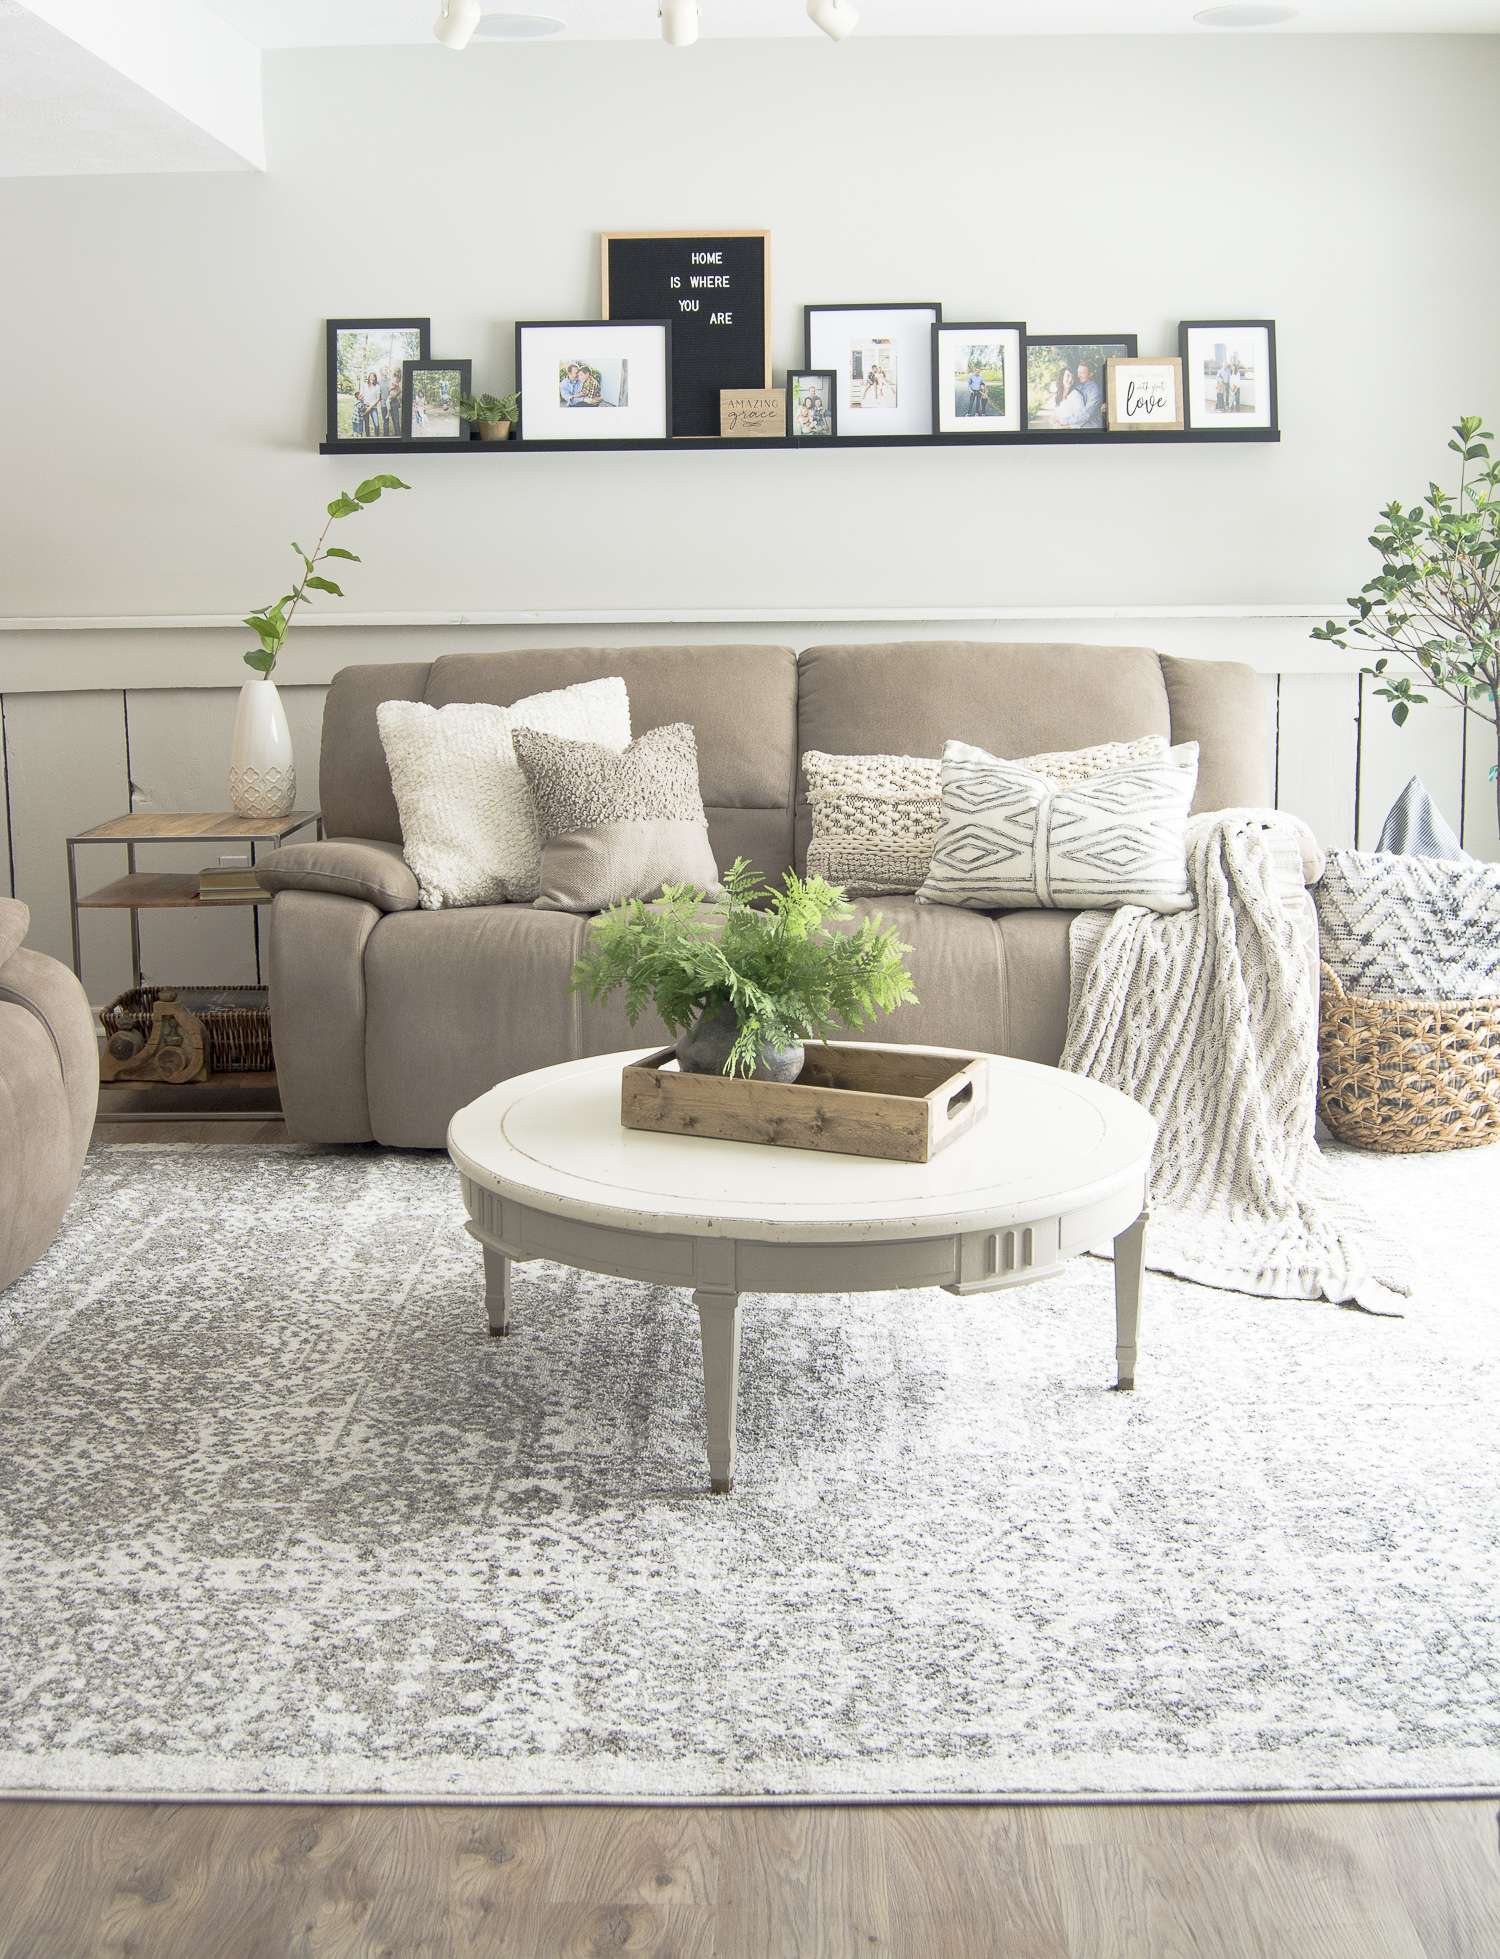 Ready to transform your home to the modern farmhouse interior design style? Here is my full home style guide with my best modern farmhouse decor sources. #fromhousetohaven #farmhouseinteriordesign #modernfarmhousestyle